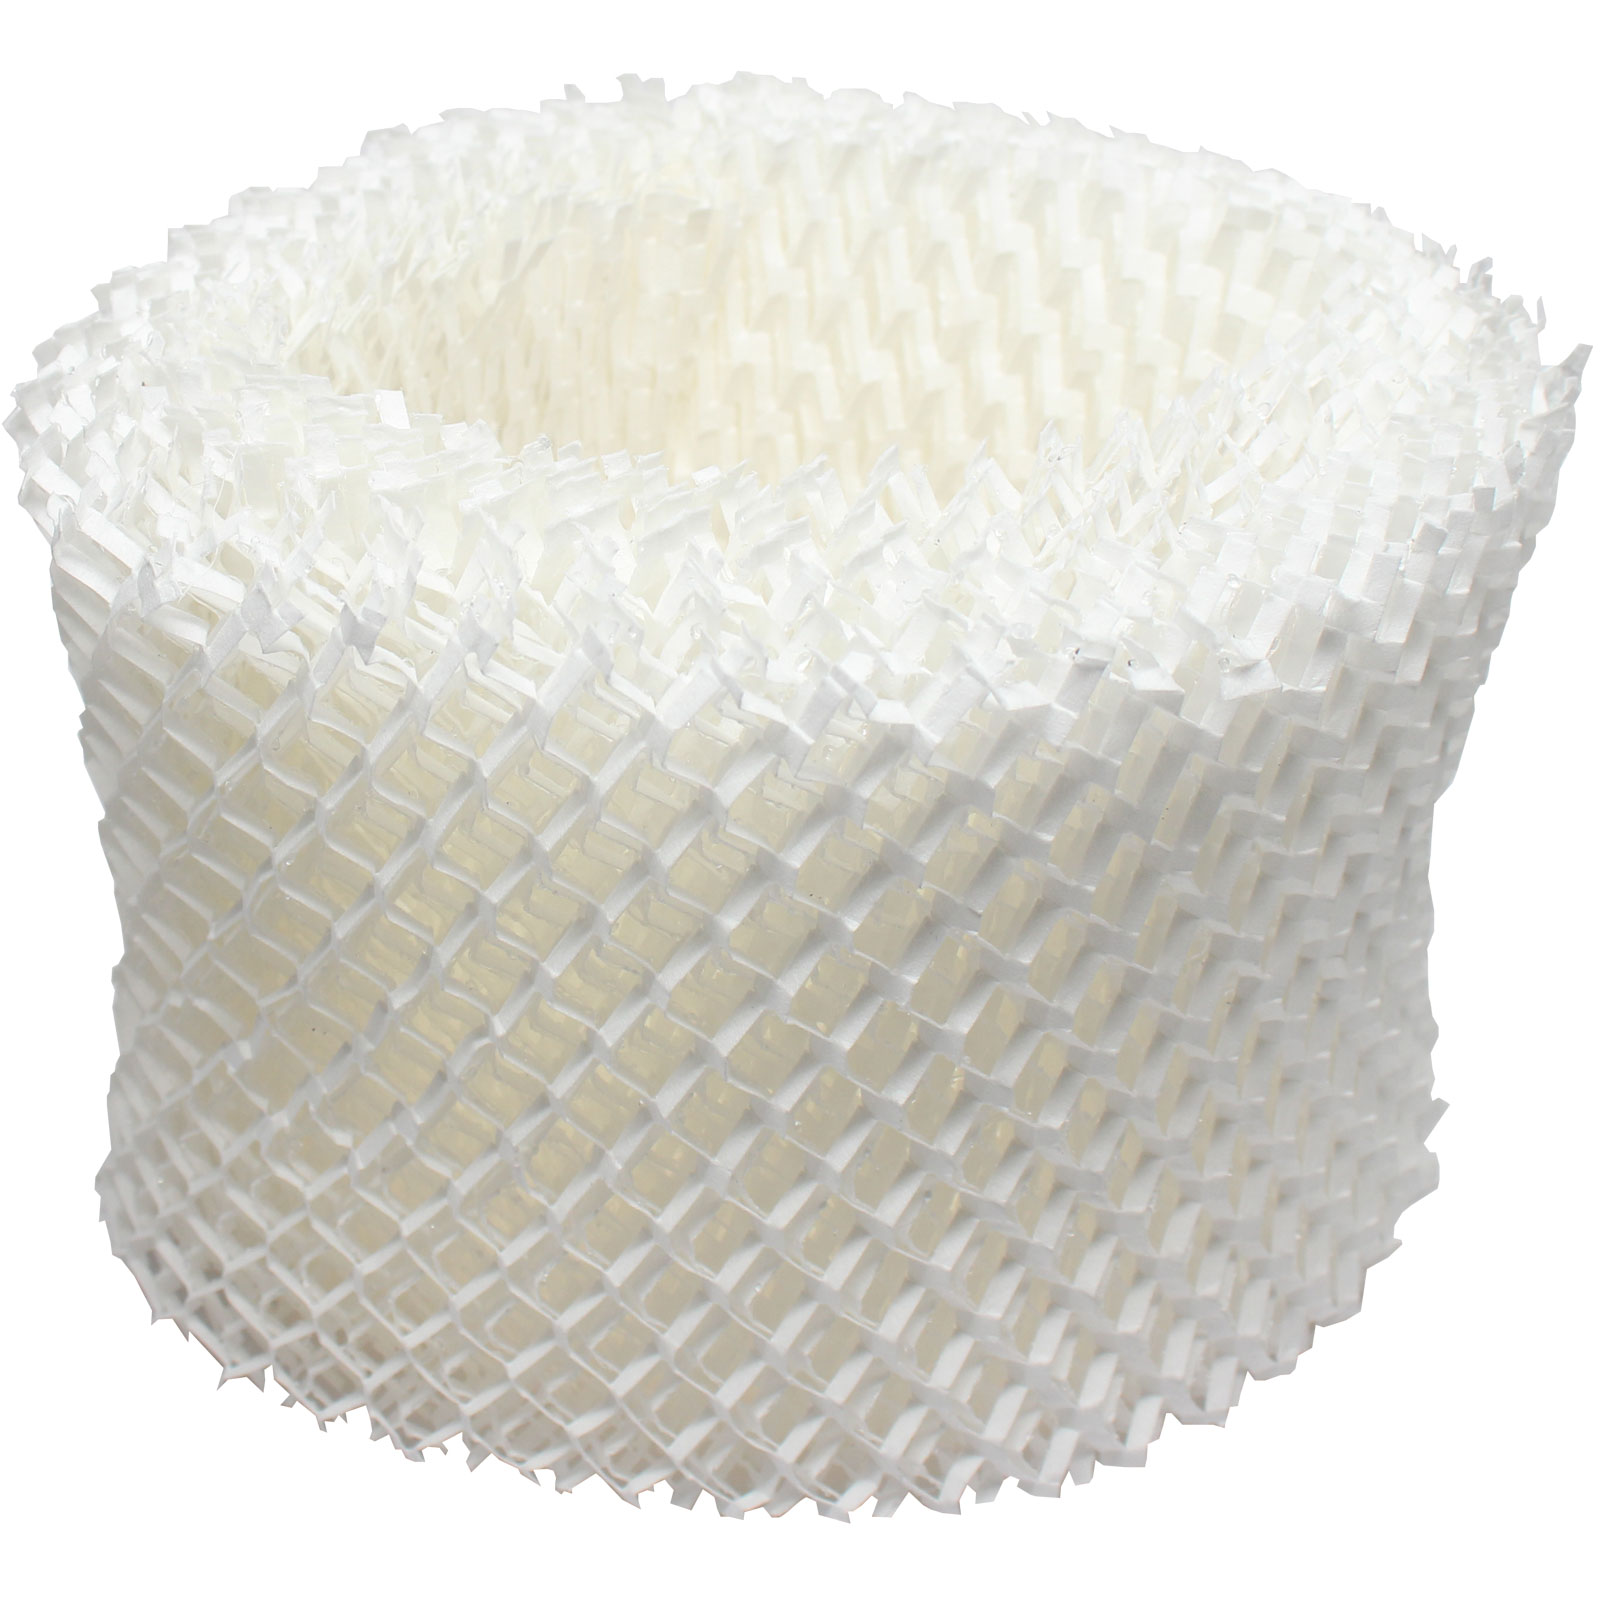 Replacement Honeywell HCM-53x Humidifier Filter  - Compatible Honeywell HAC-504, HAC-504AW Air Filter